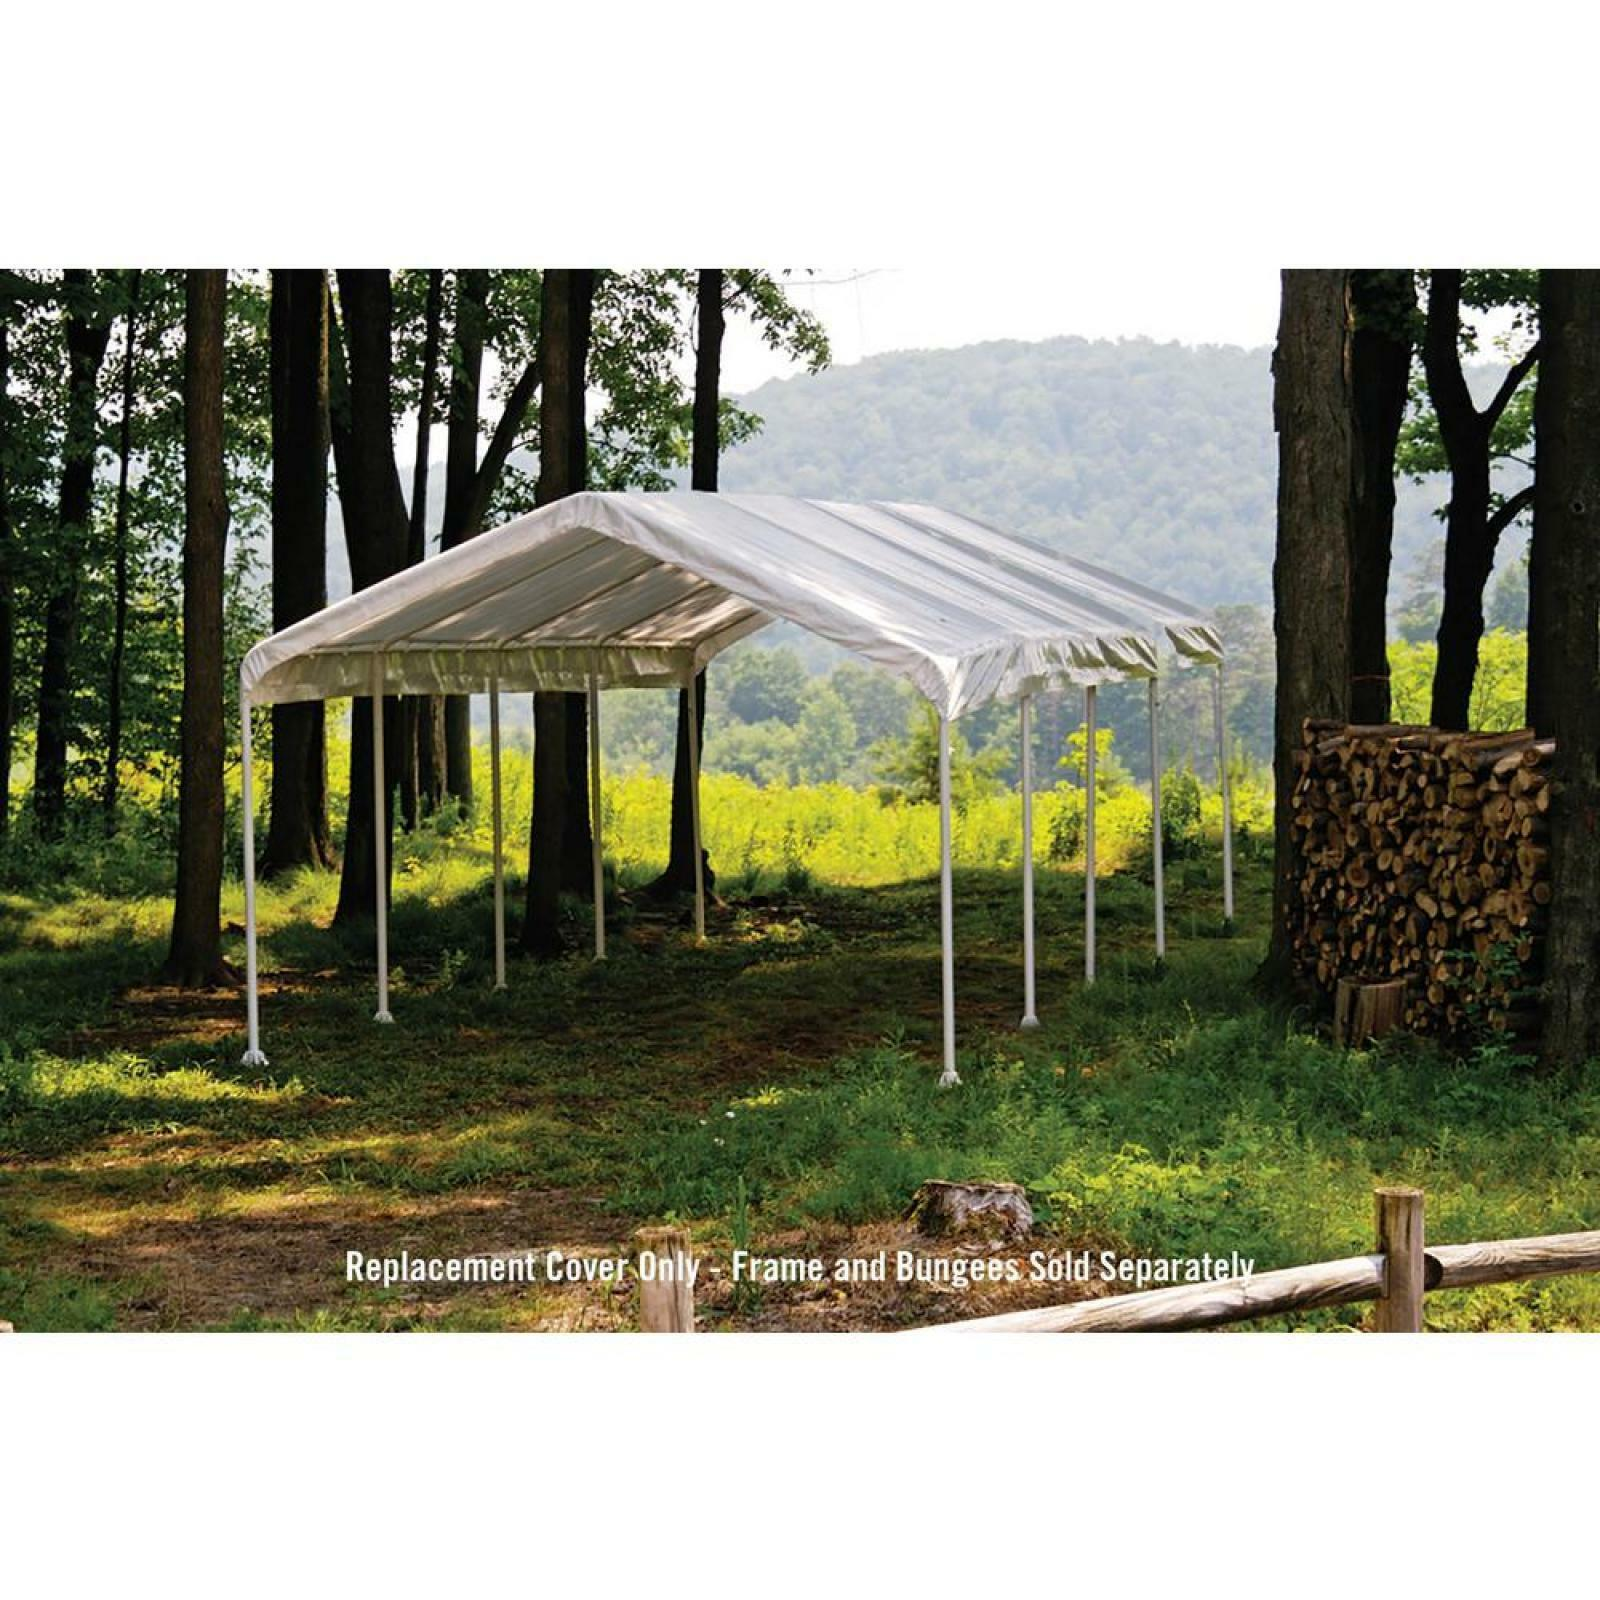 Shelterlogic Super Max 12 X 26 Ft Canopy Replacement Cover Waterproof White 677599100598 Ebay